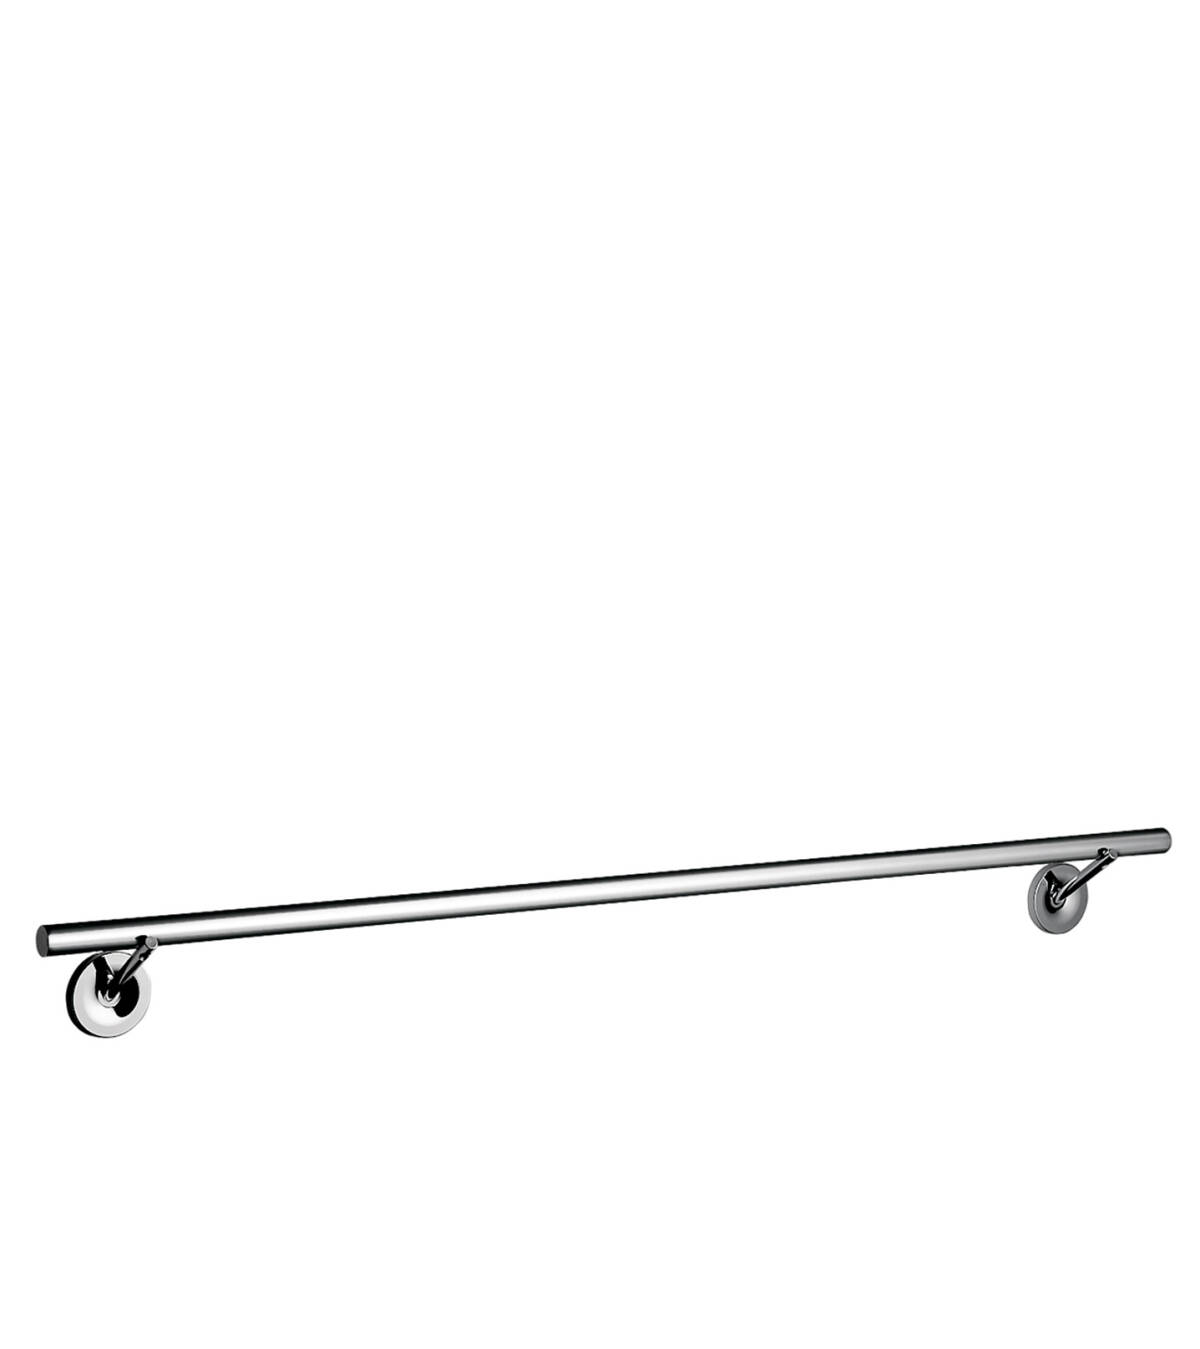 Bath towel rail 600 mm, Polished Red Gold, 40806300